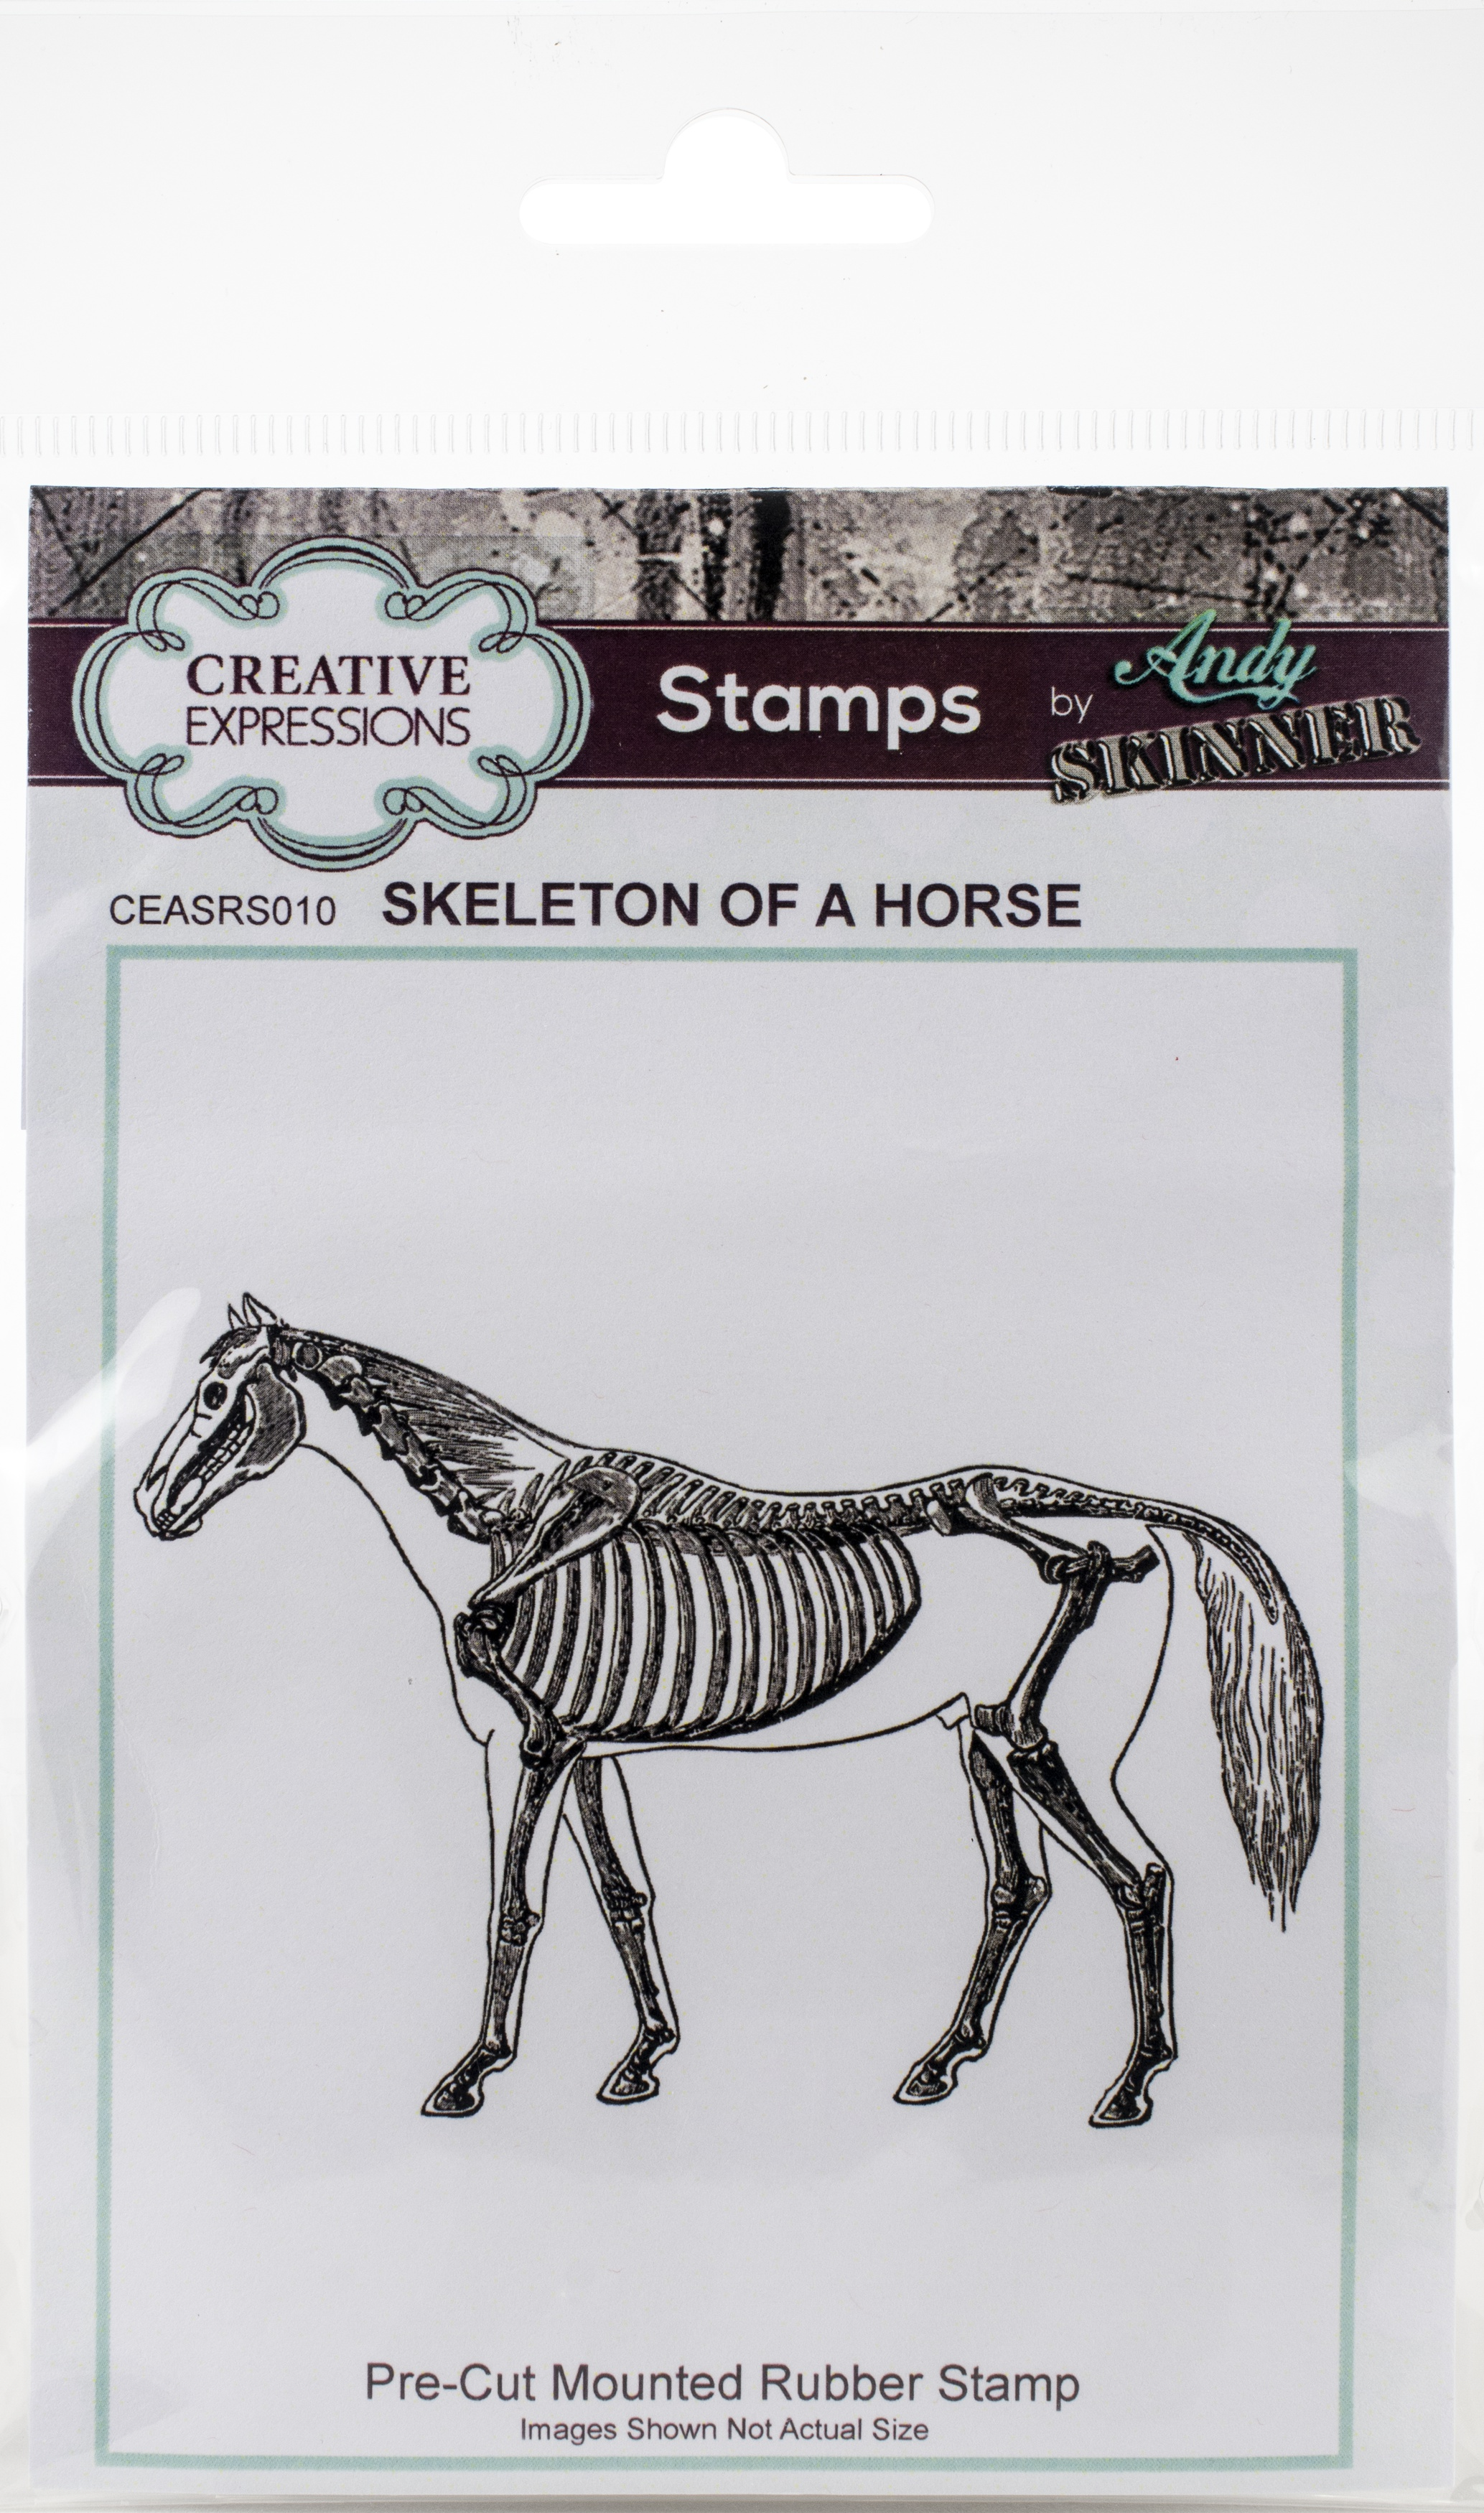 Creative Expressions Rubber Stamp By Andy Skinner-Skeleton Of A Horse